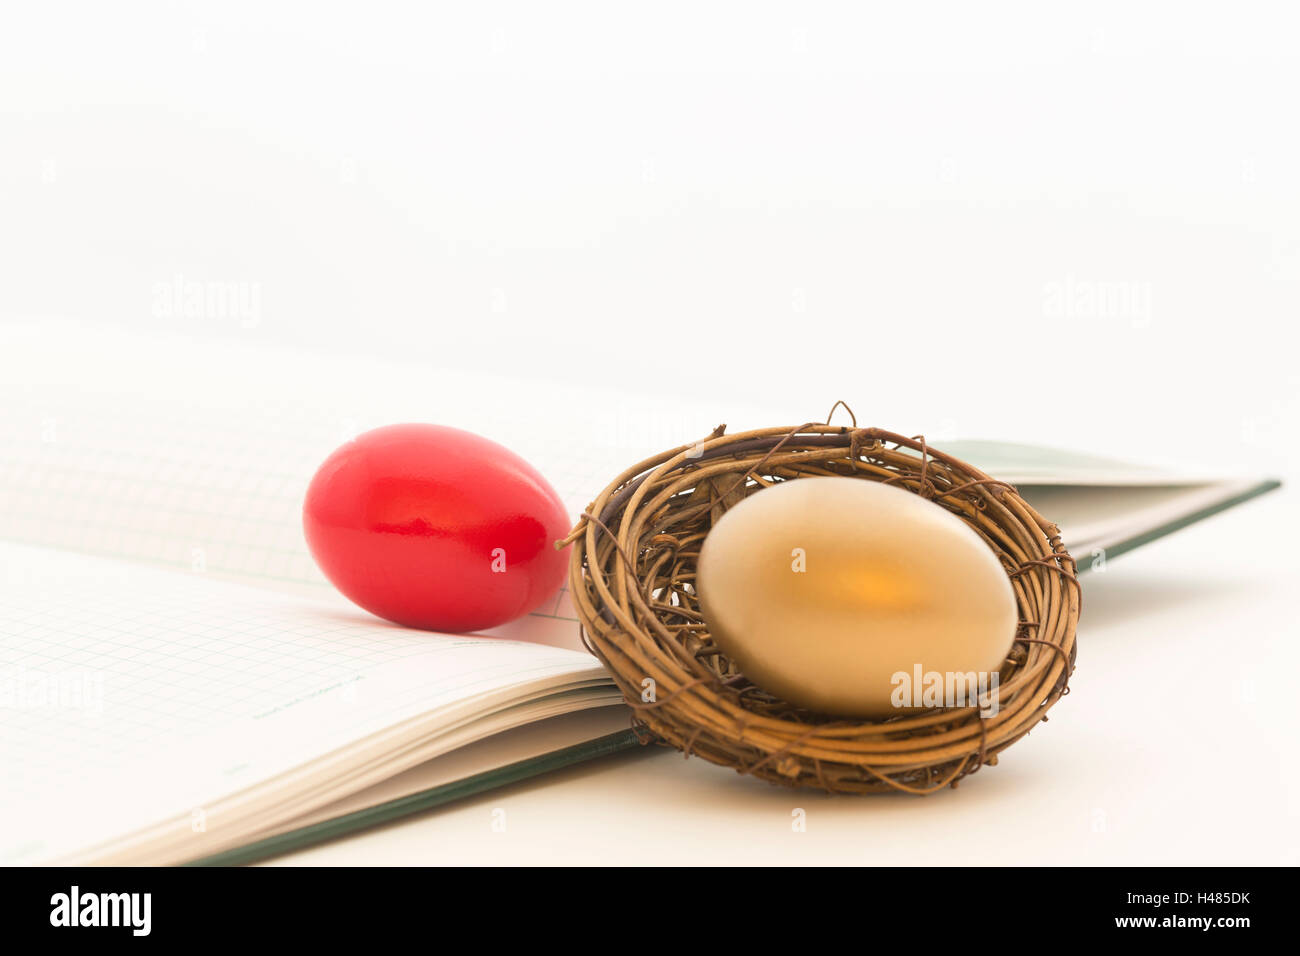 Red and gold nest eggs on green ledger reflect risk and opportunity in investment environment for businesses and - Stock Image